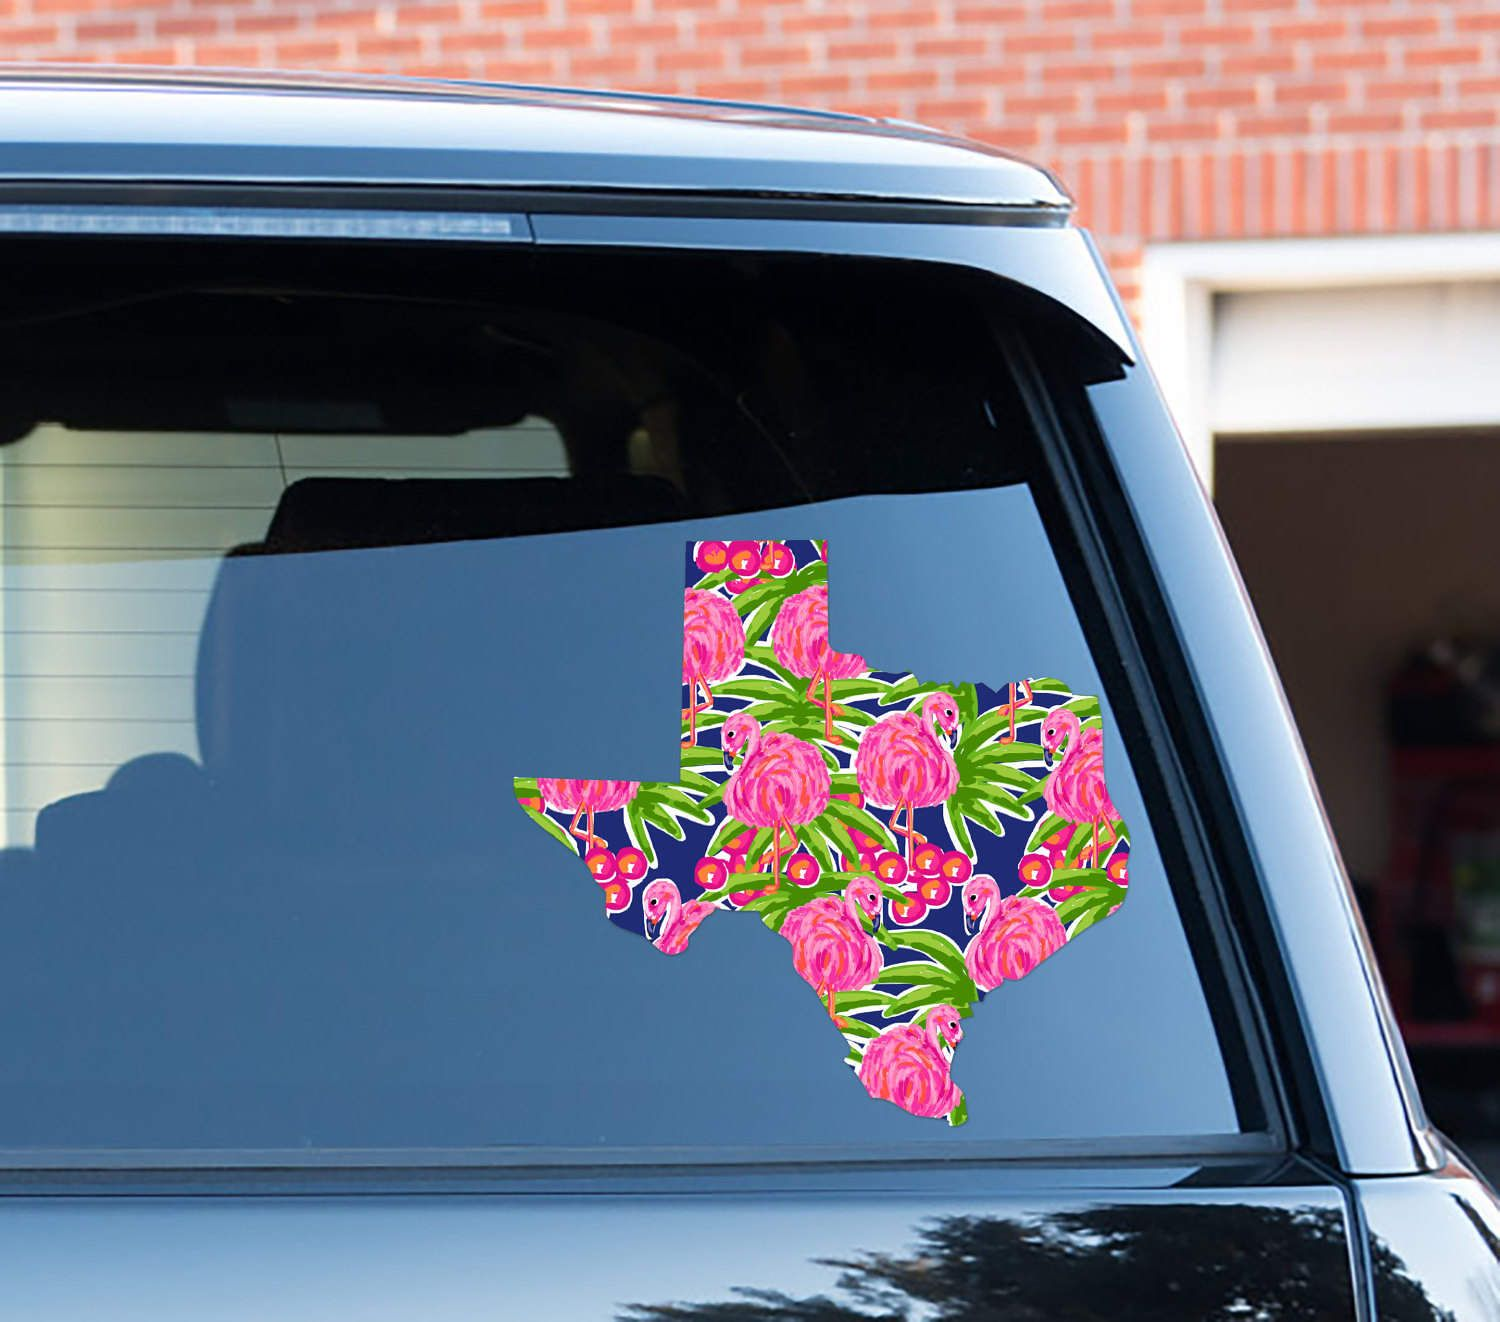 Home State Texas Car Decal Lilly Inspired Car Stickers Car Decor - Cool car decals designcar decal sticker square chain design car design